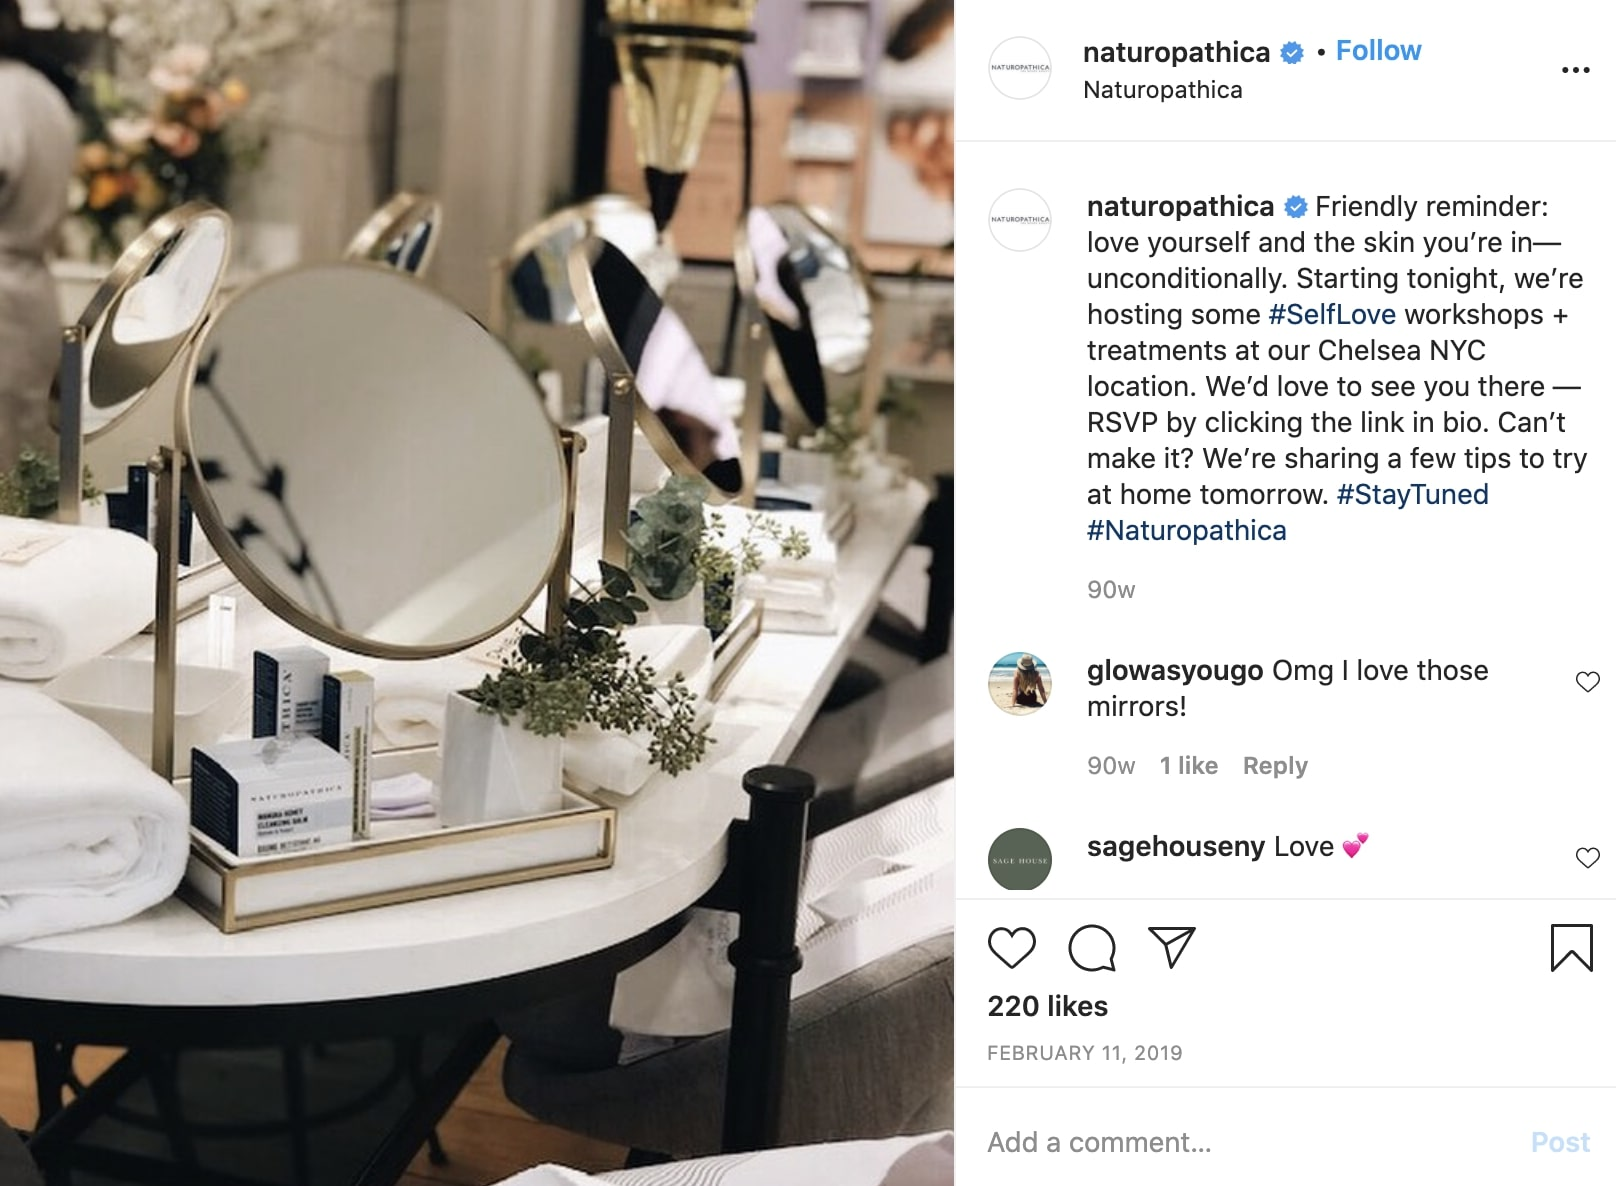 Rich business experience attract Gen Z to Spa salons and barbershops